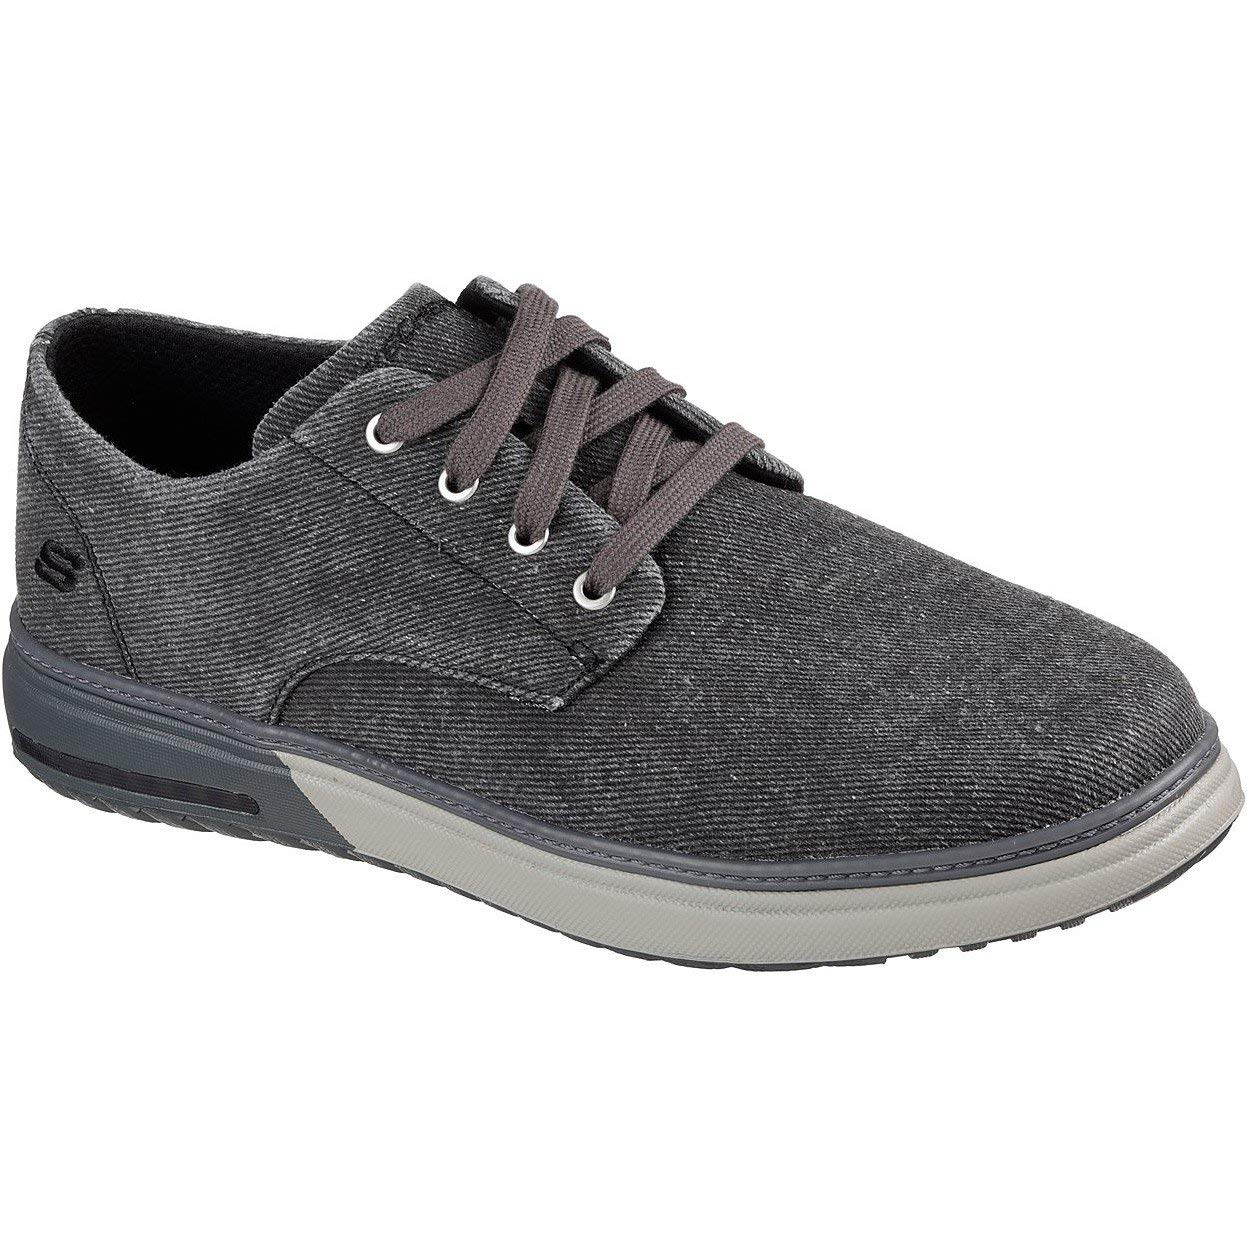 TALLA 42 EU. Skechers Mens Folten-Brisor Canvas Shoes